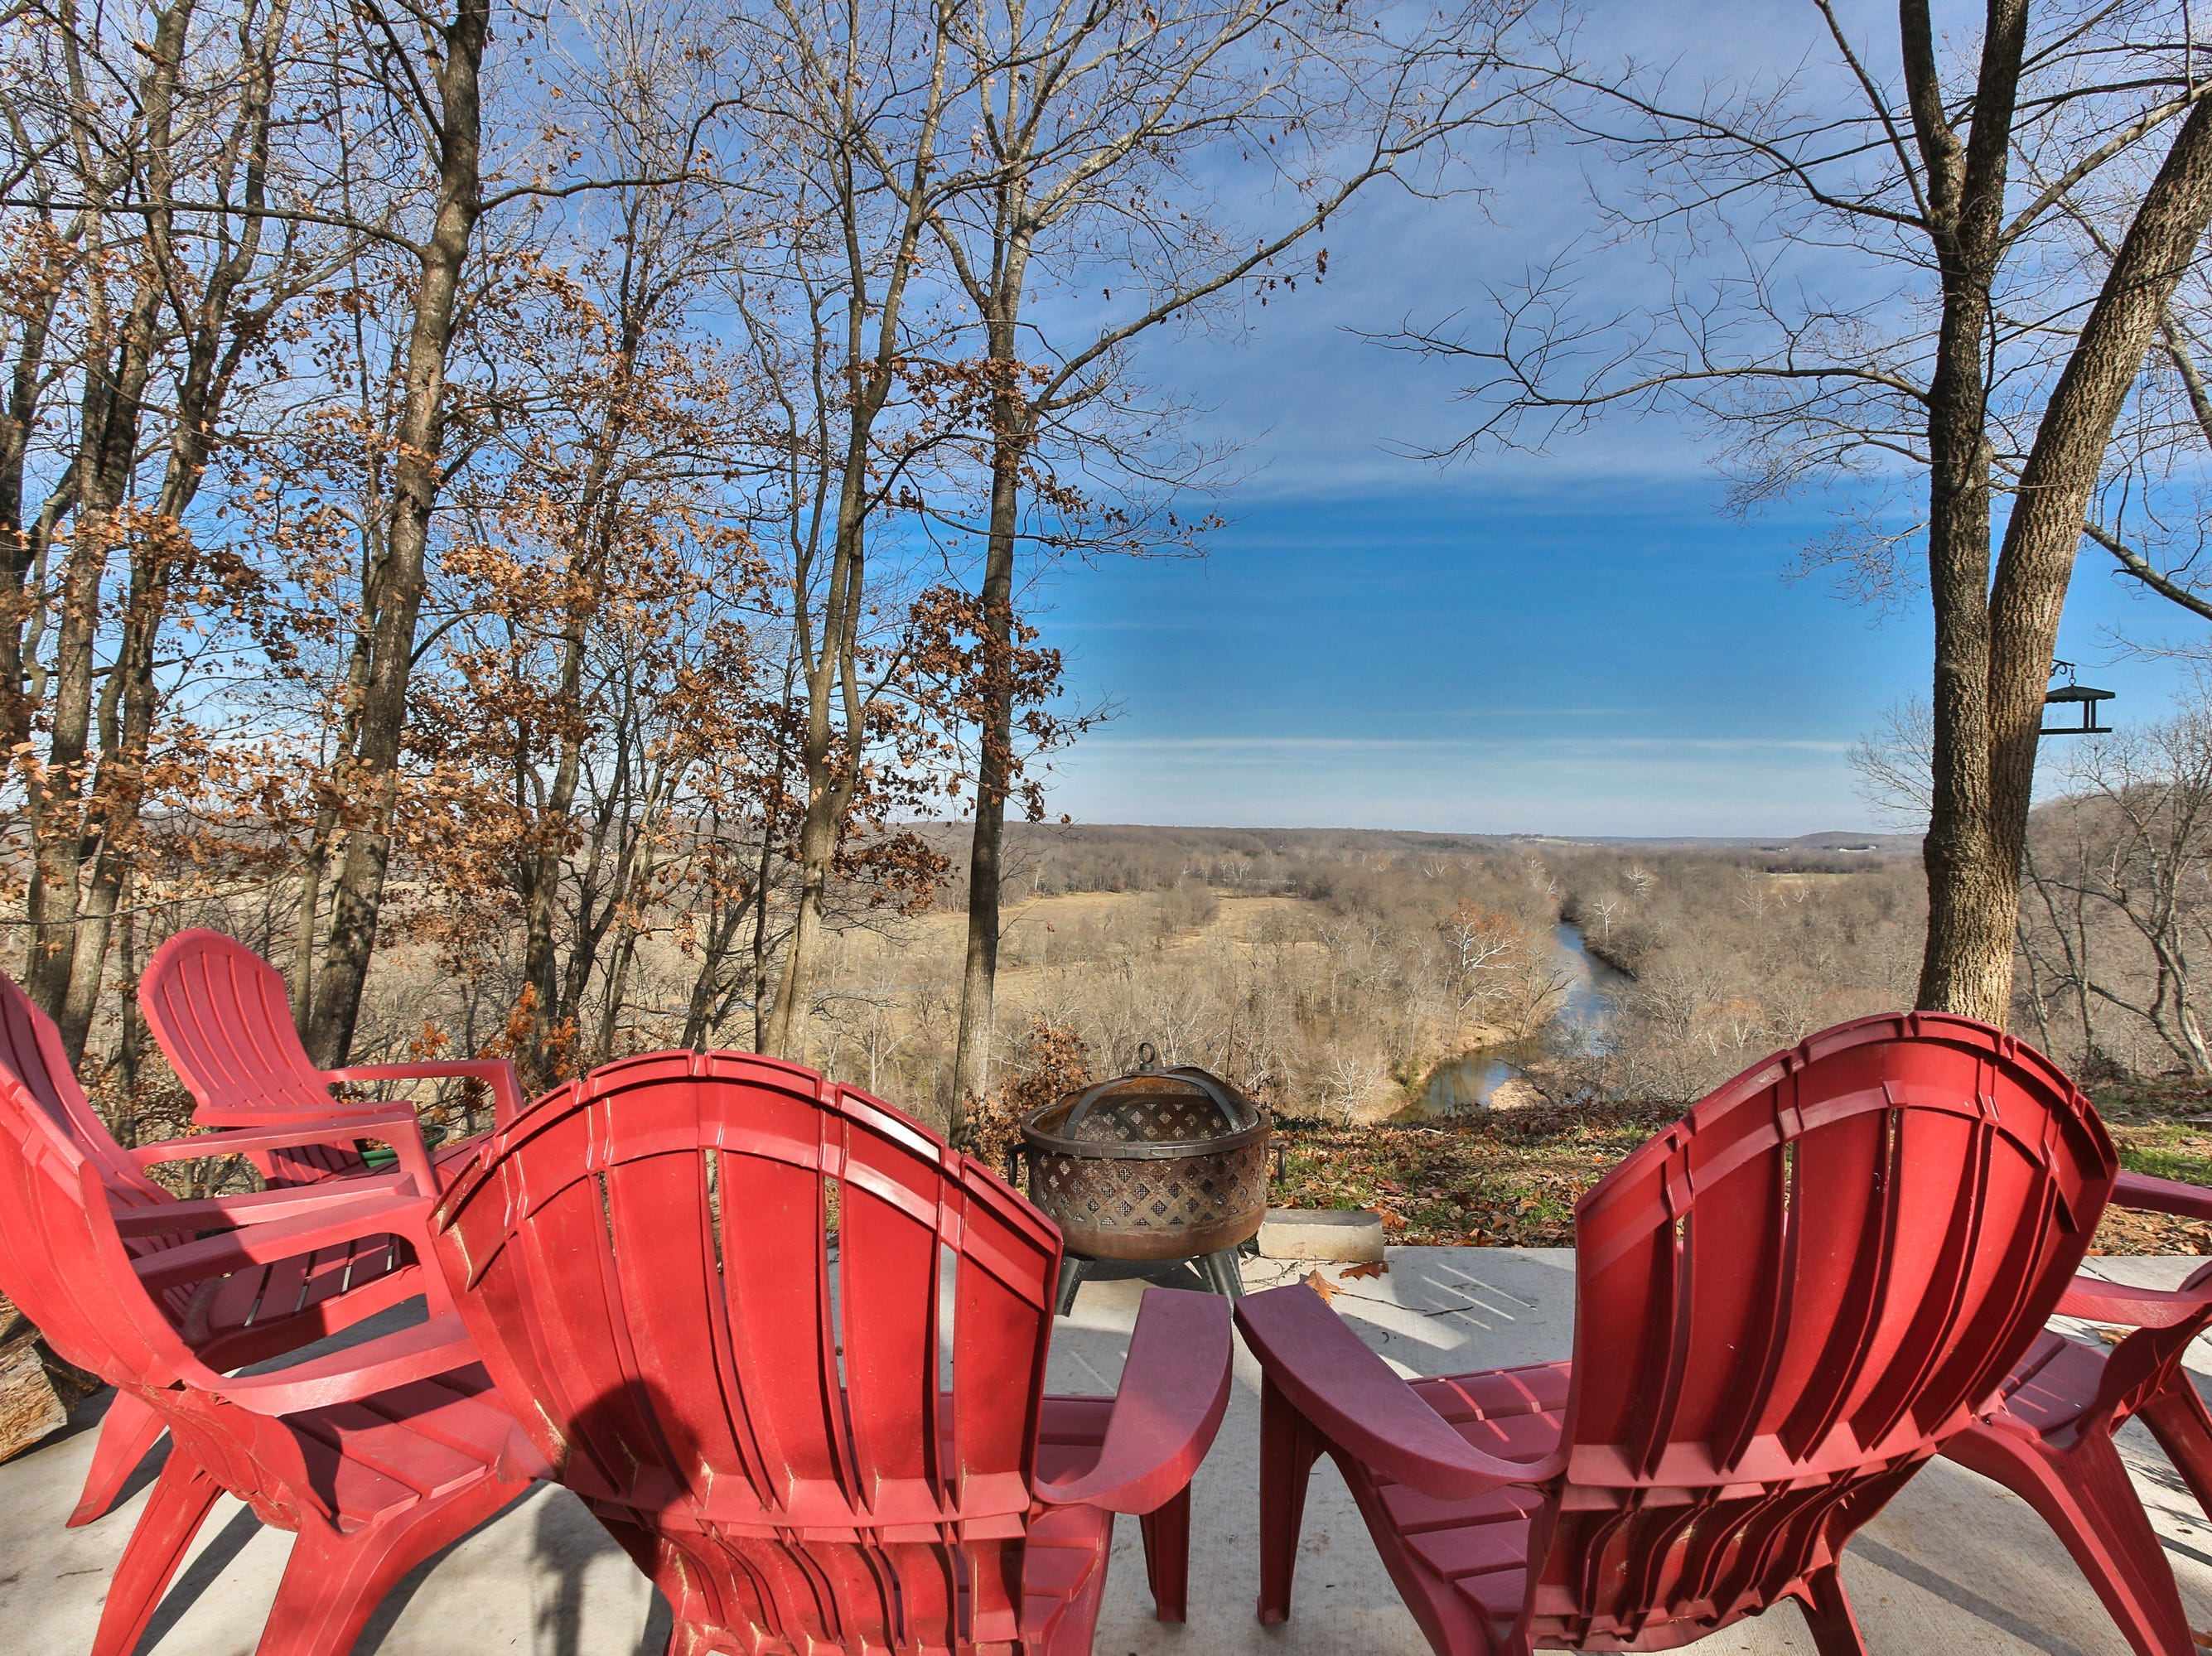 The property offers many angles from which to enjoy a view of the James River.